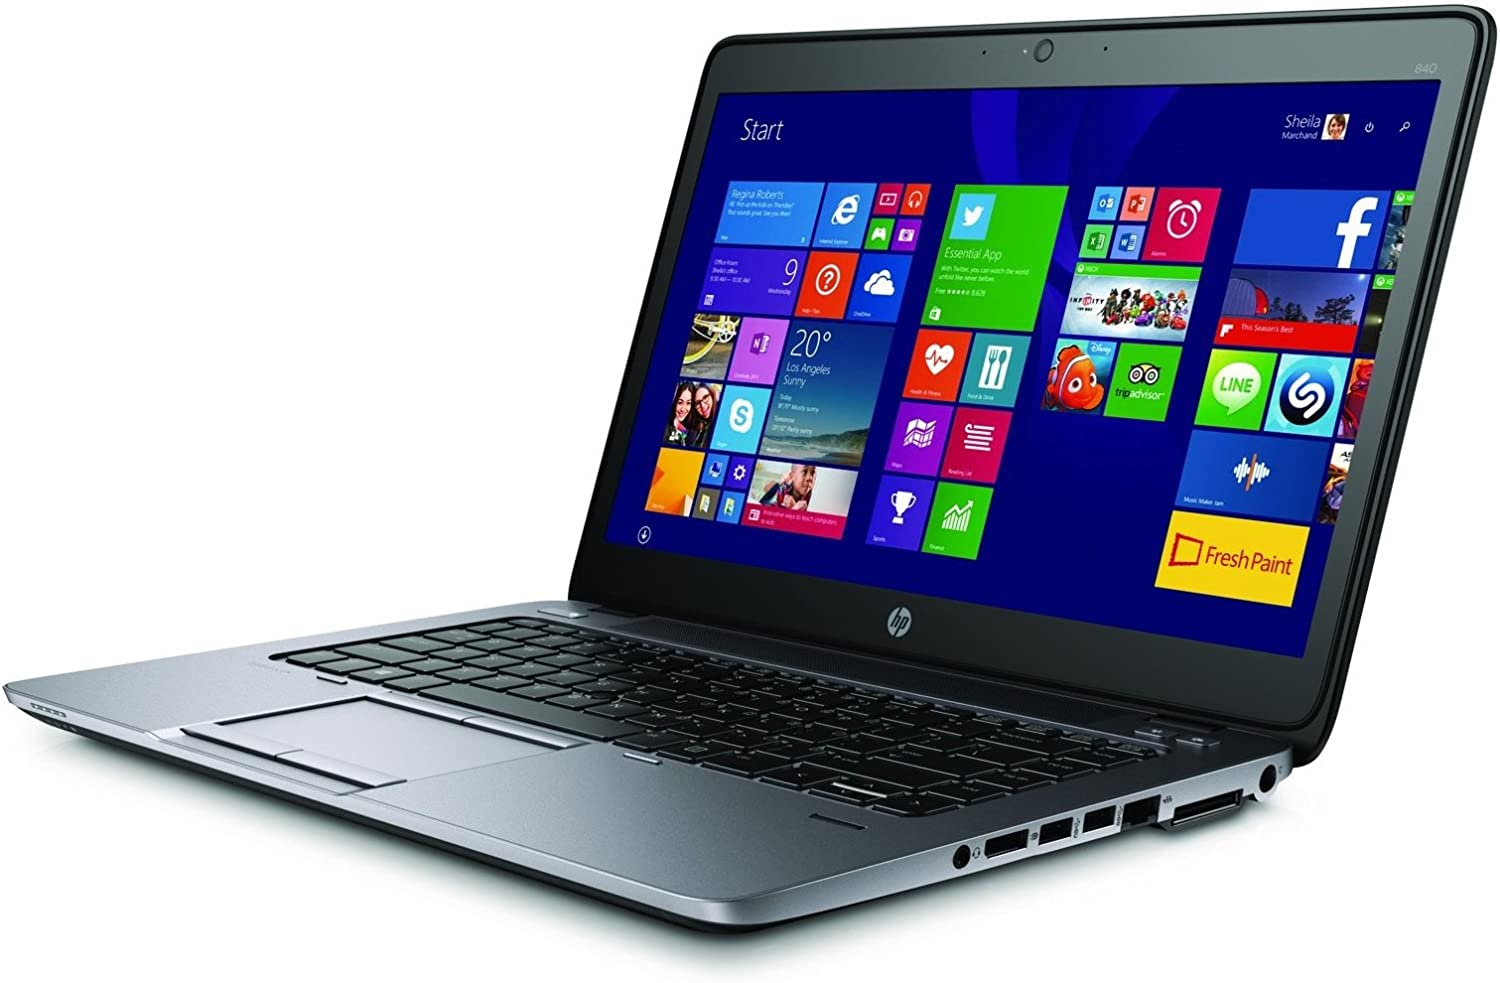 HP EliteBook 840 G2 Business Notebook with 14 Inch HD Display, Intel Core i7 CPU, 8GB RAM, 256GB SSD, Windows 10 (Renewed)